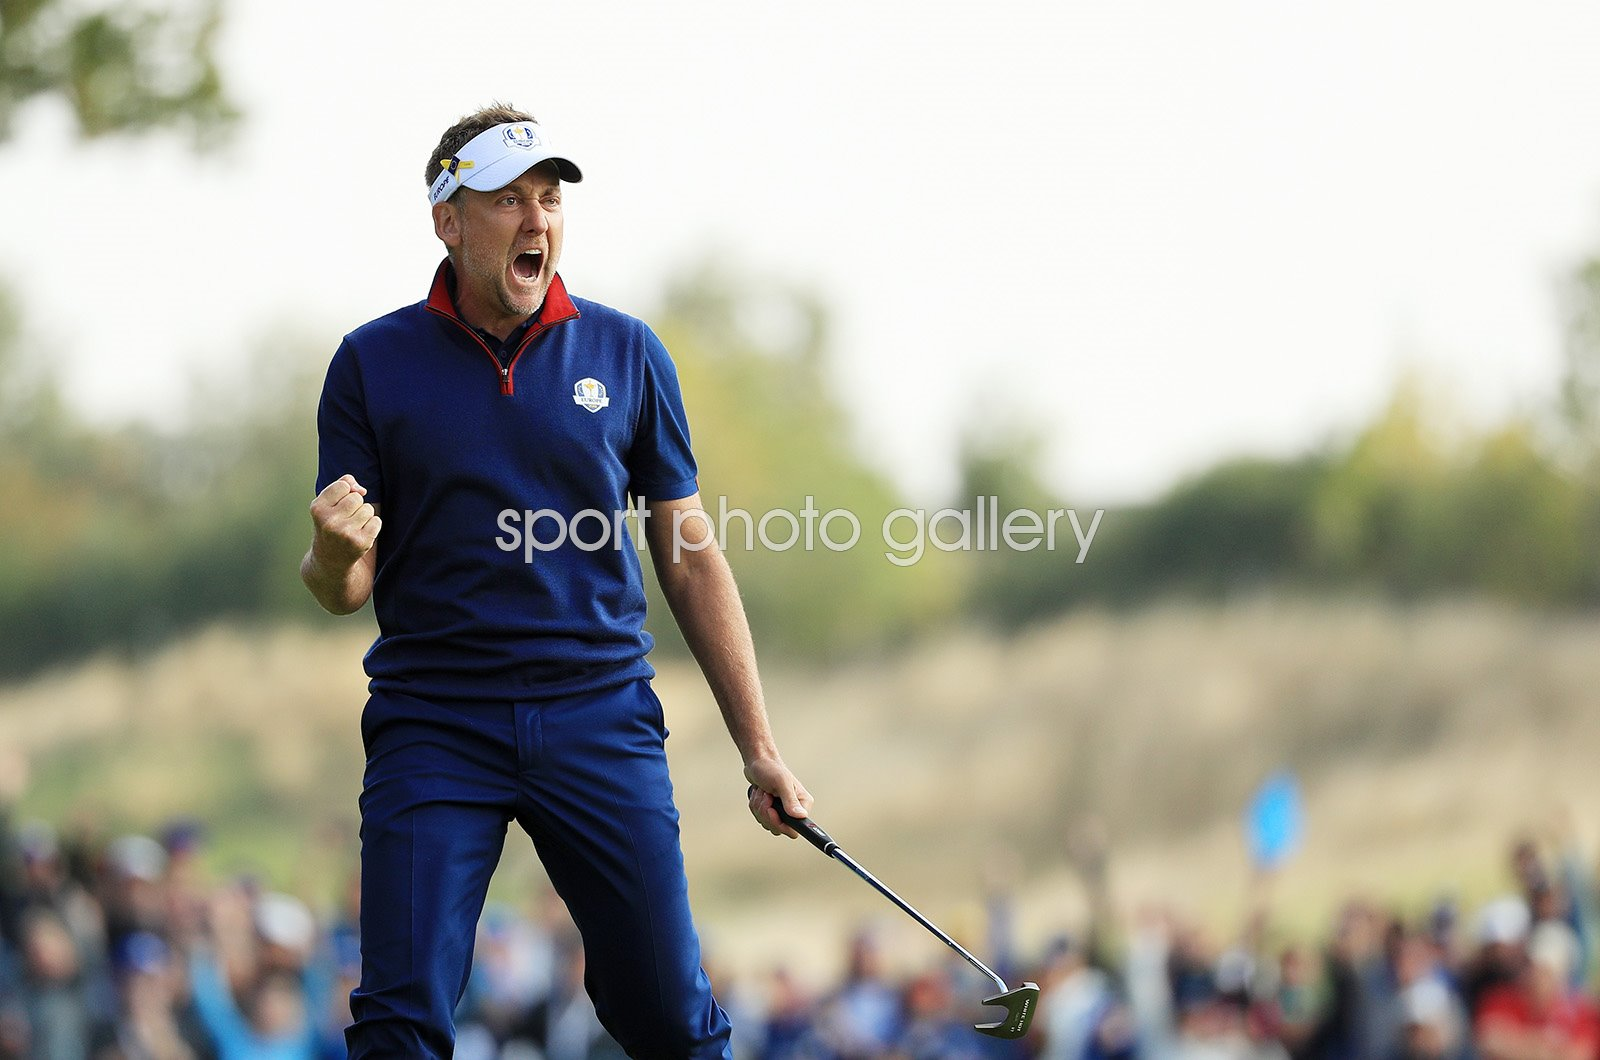 Ian Poulter Europe Day 1 Foursomes Ryder Cup Paris 2018